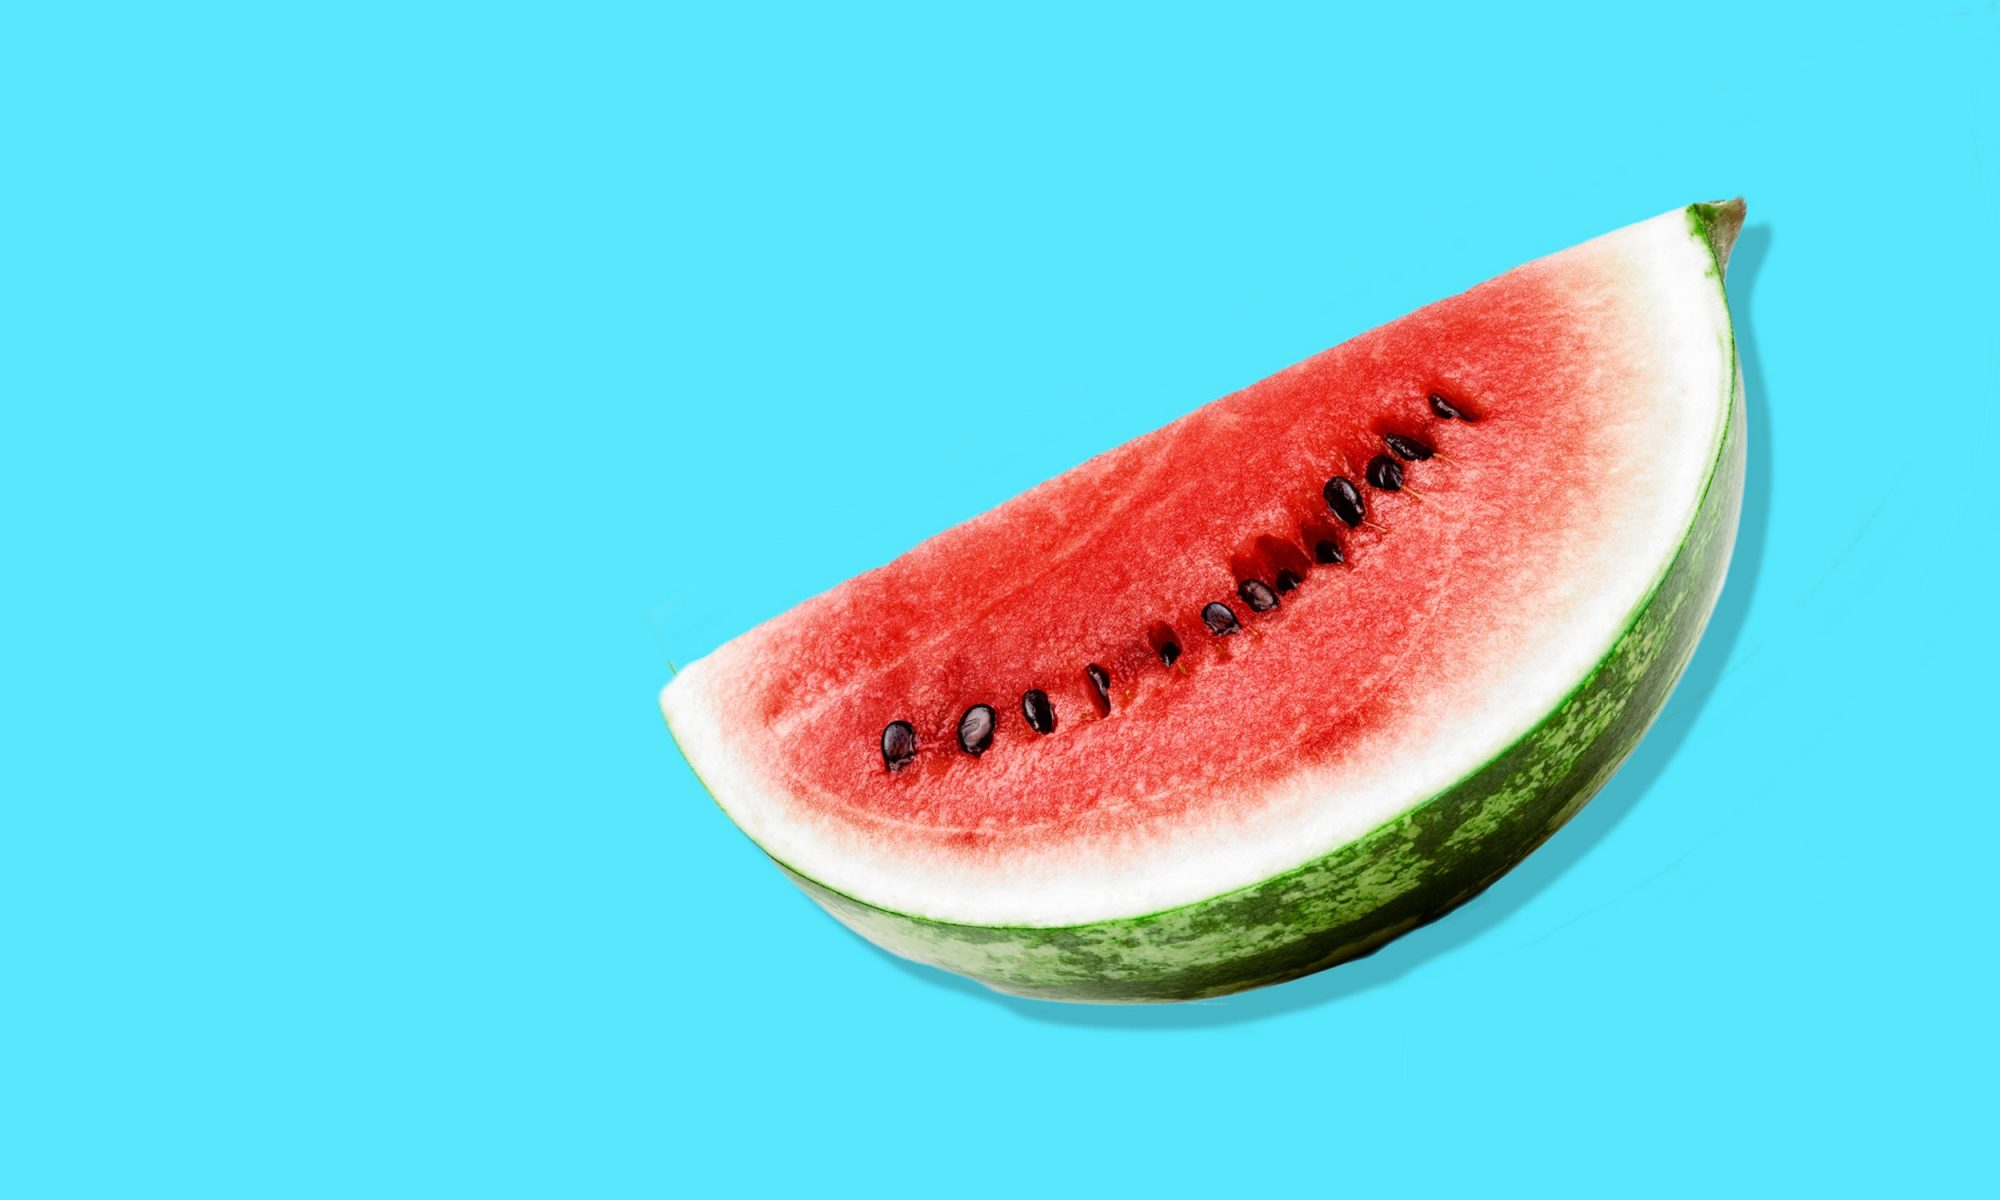 EC: How to Tell If Watermelon Is Ripe